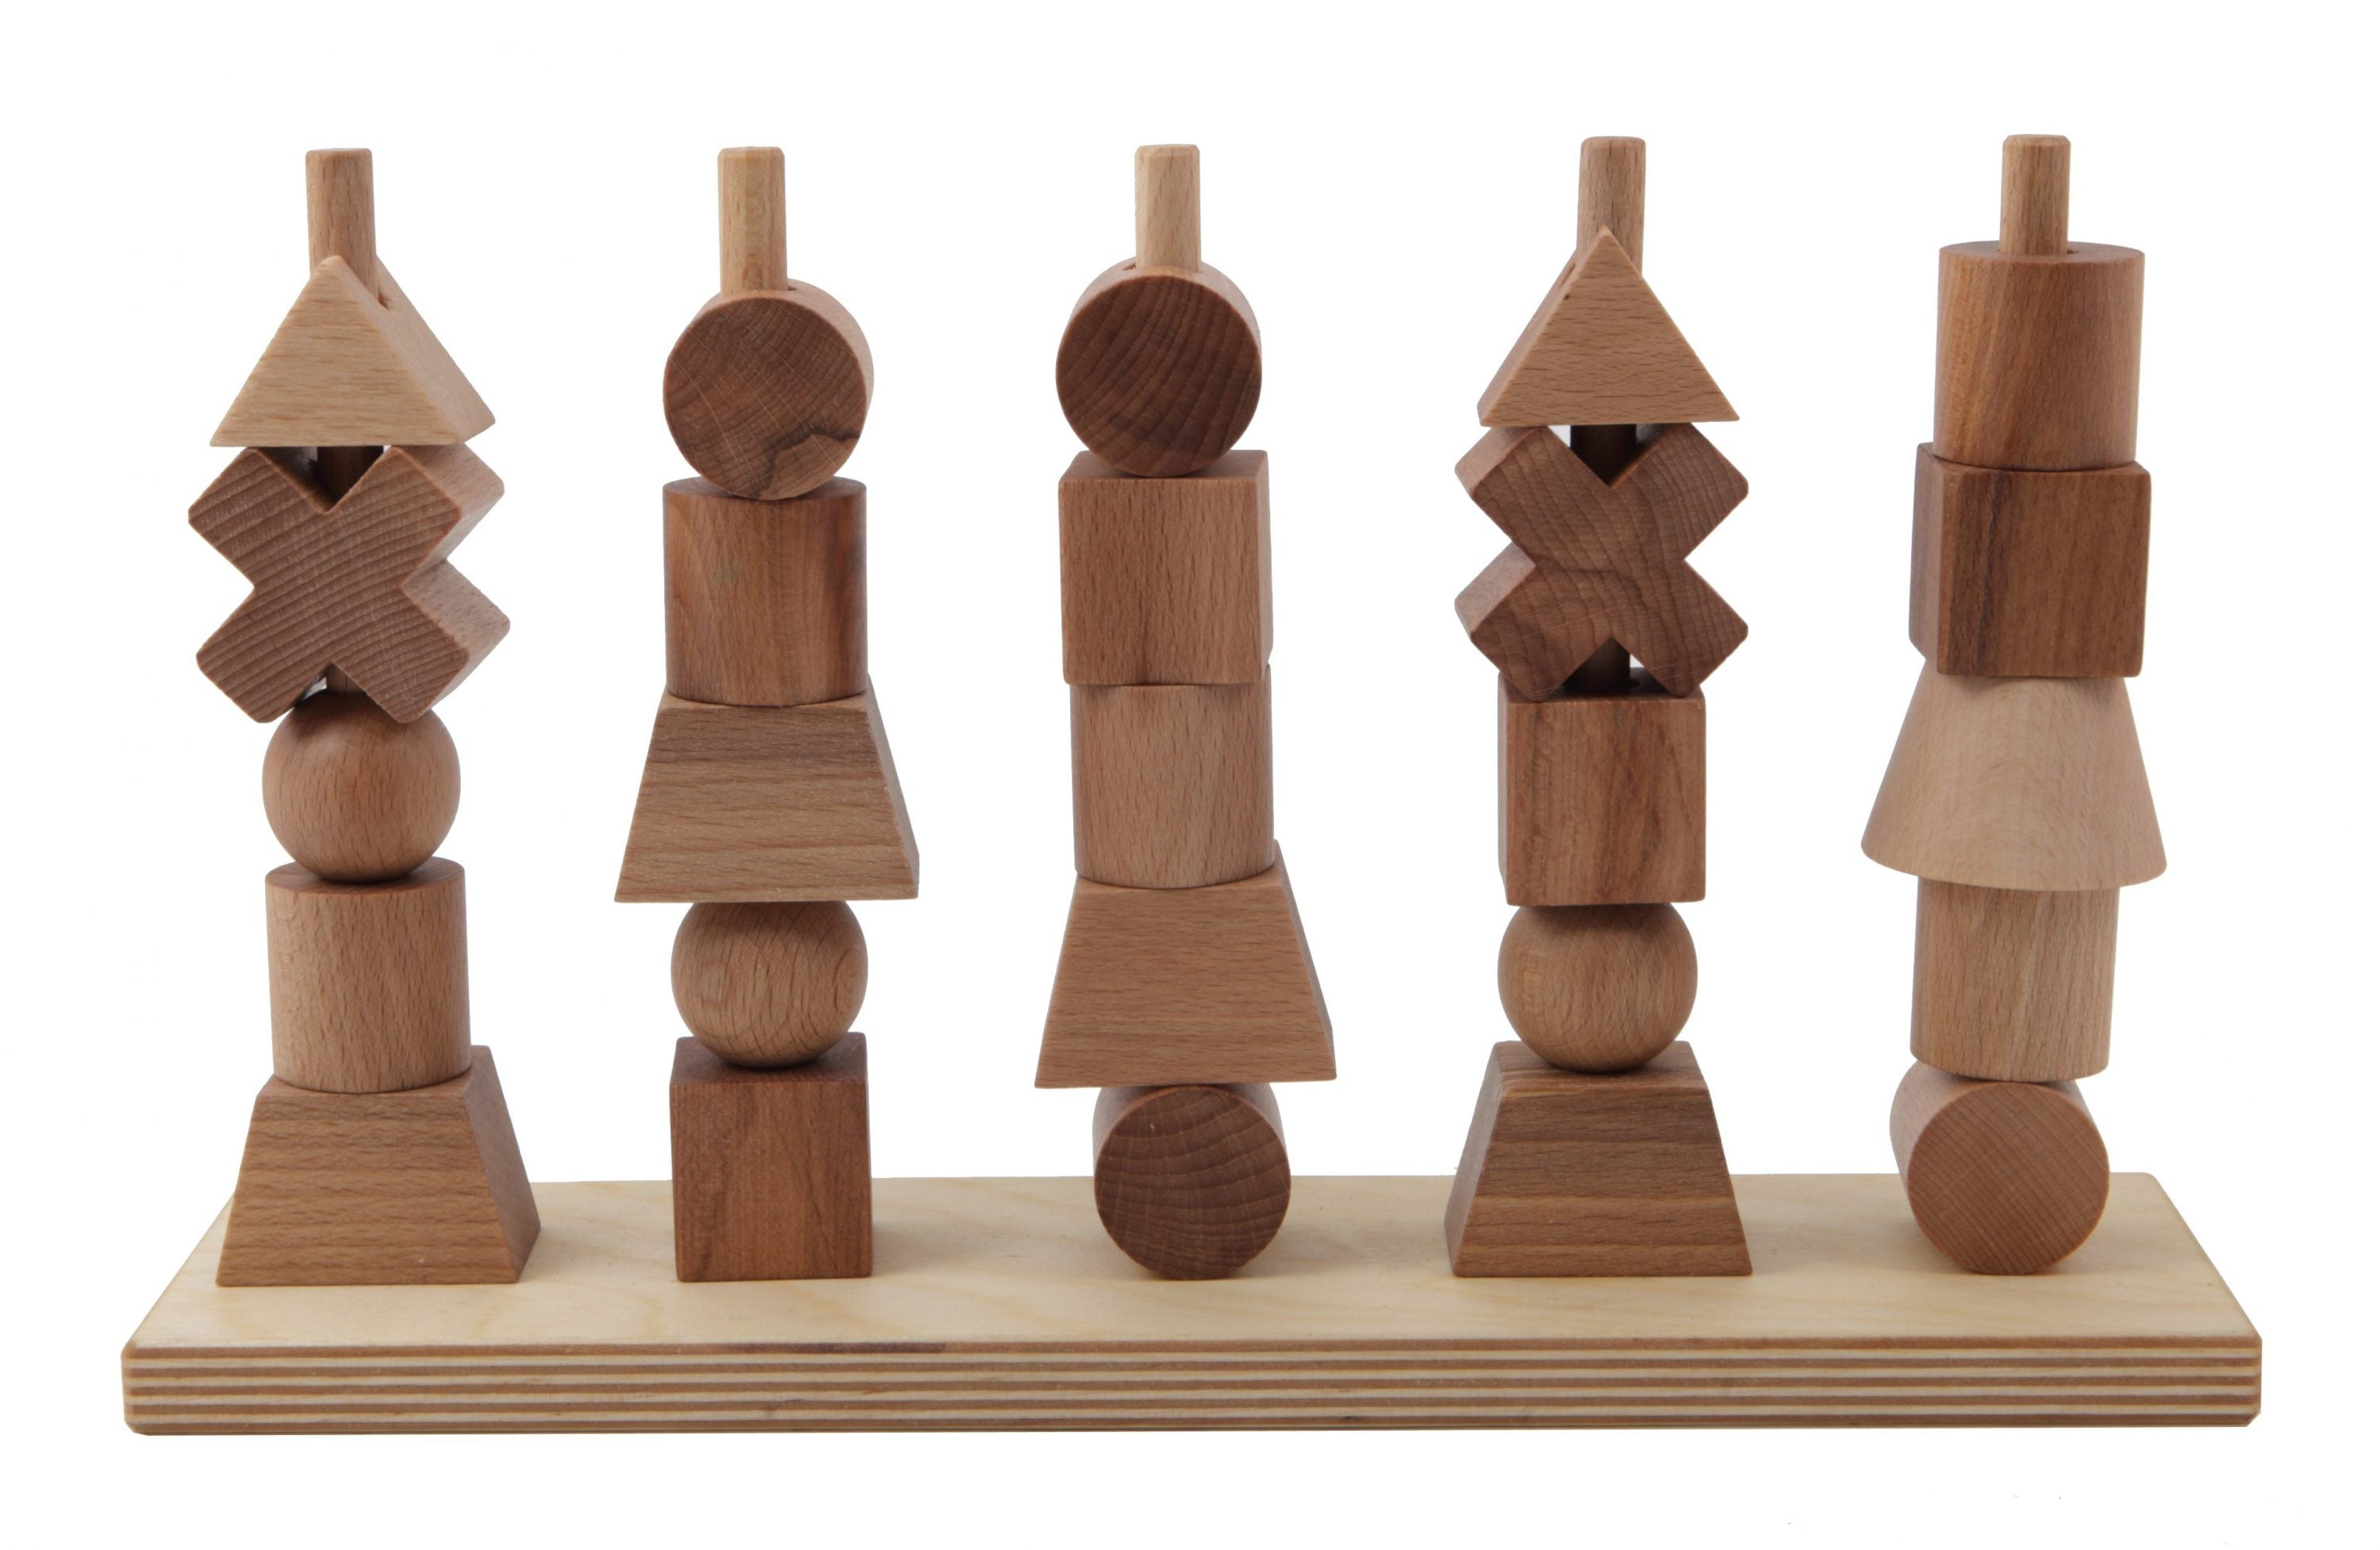 Wooden Story Wooden Story Natural Stacking Toy - Pearls & Swines